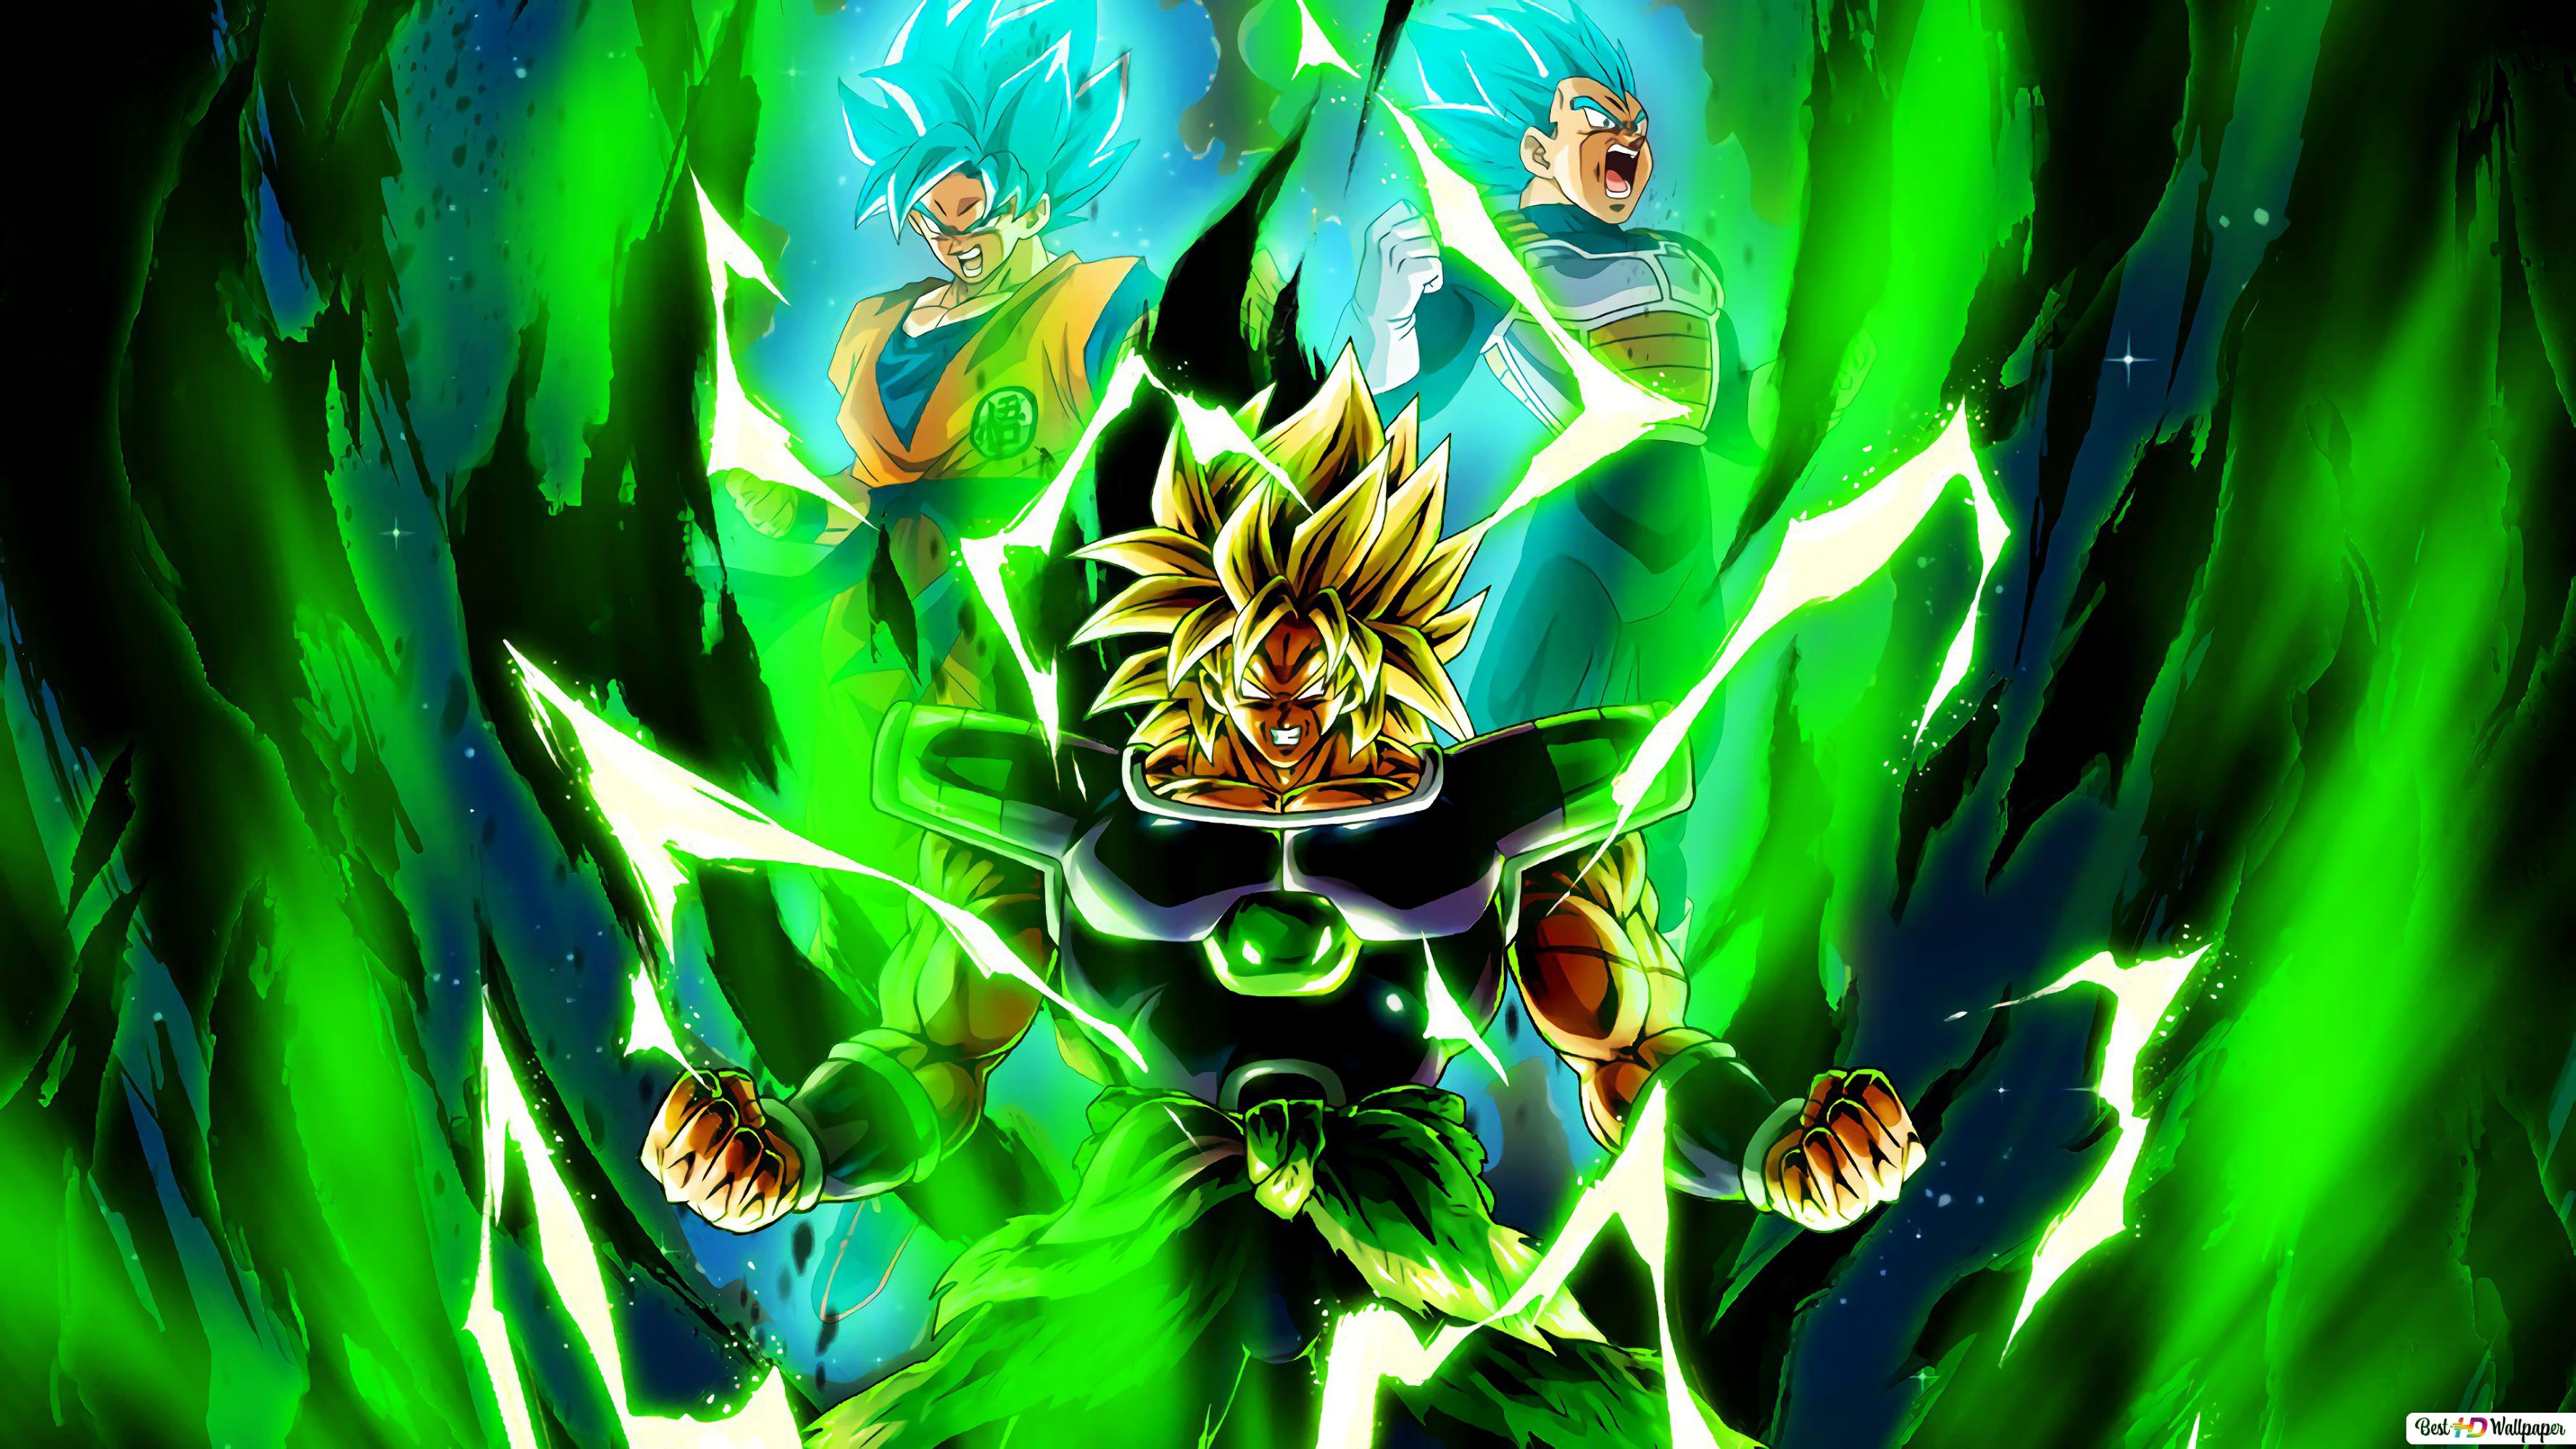 Dragon Ball Super Broly Movie Broly Goku Vegeta Hd Wallpaper